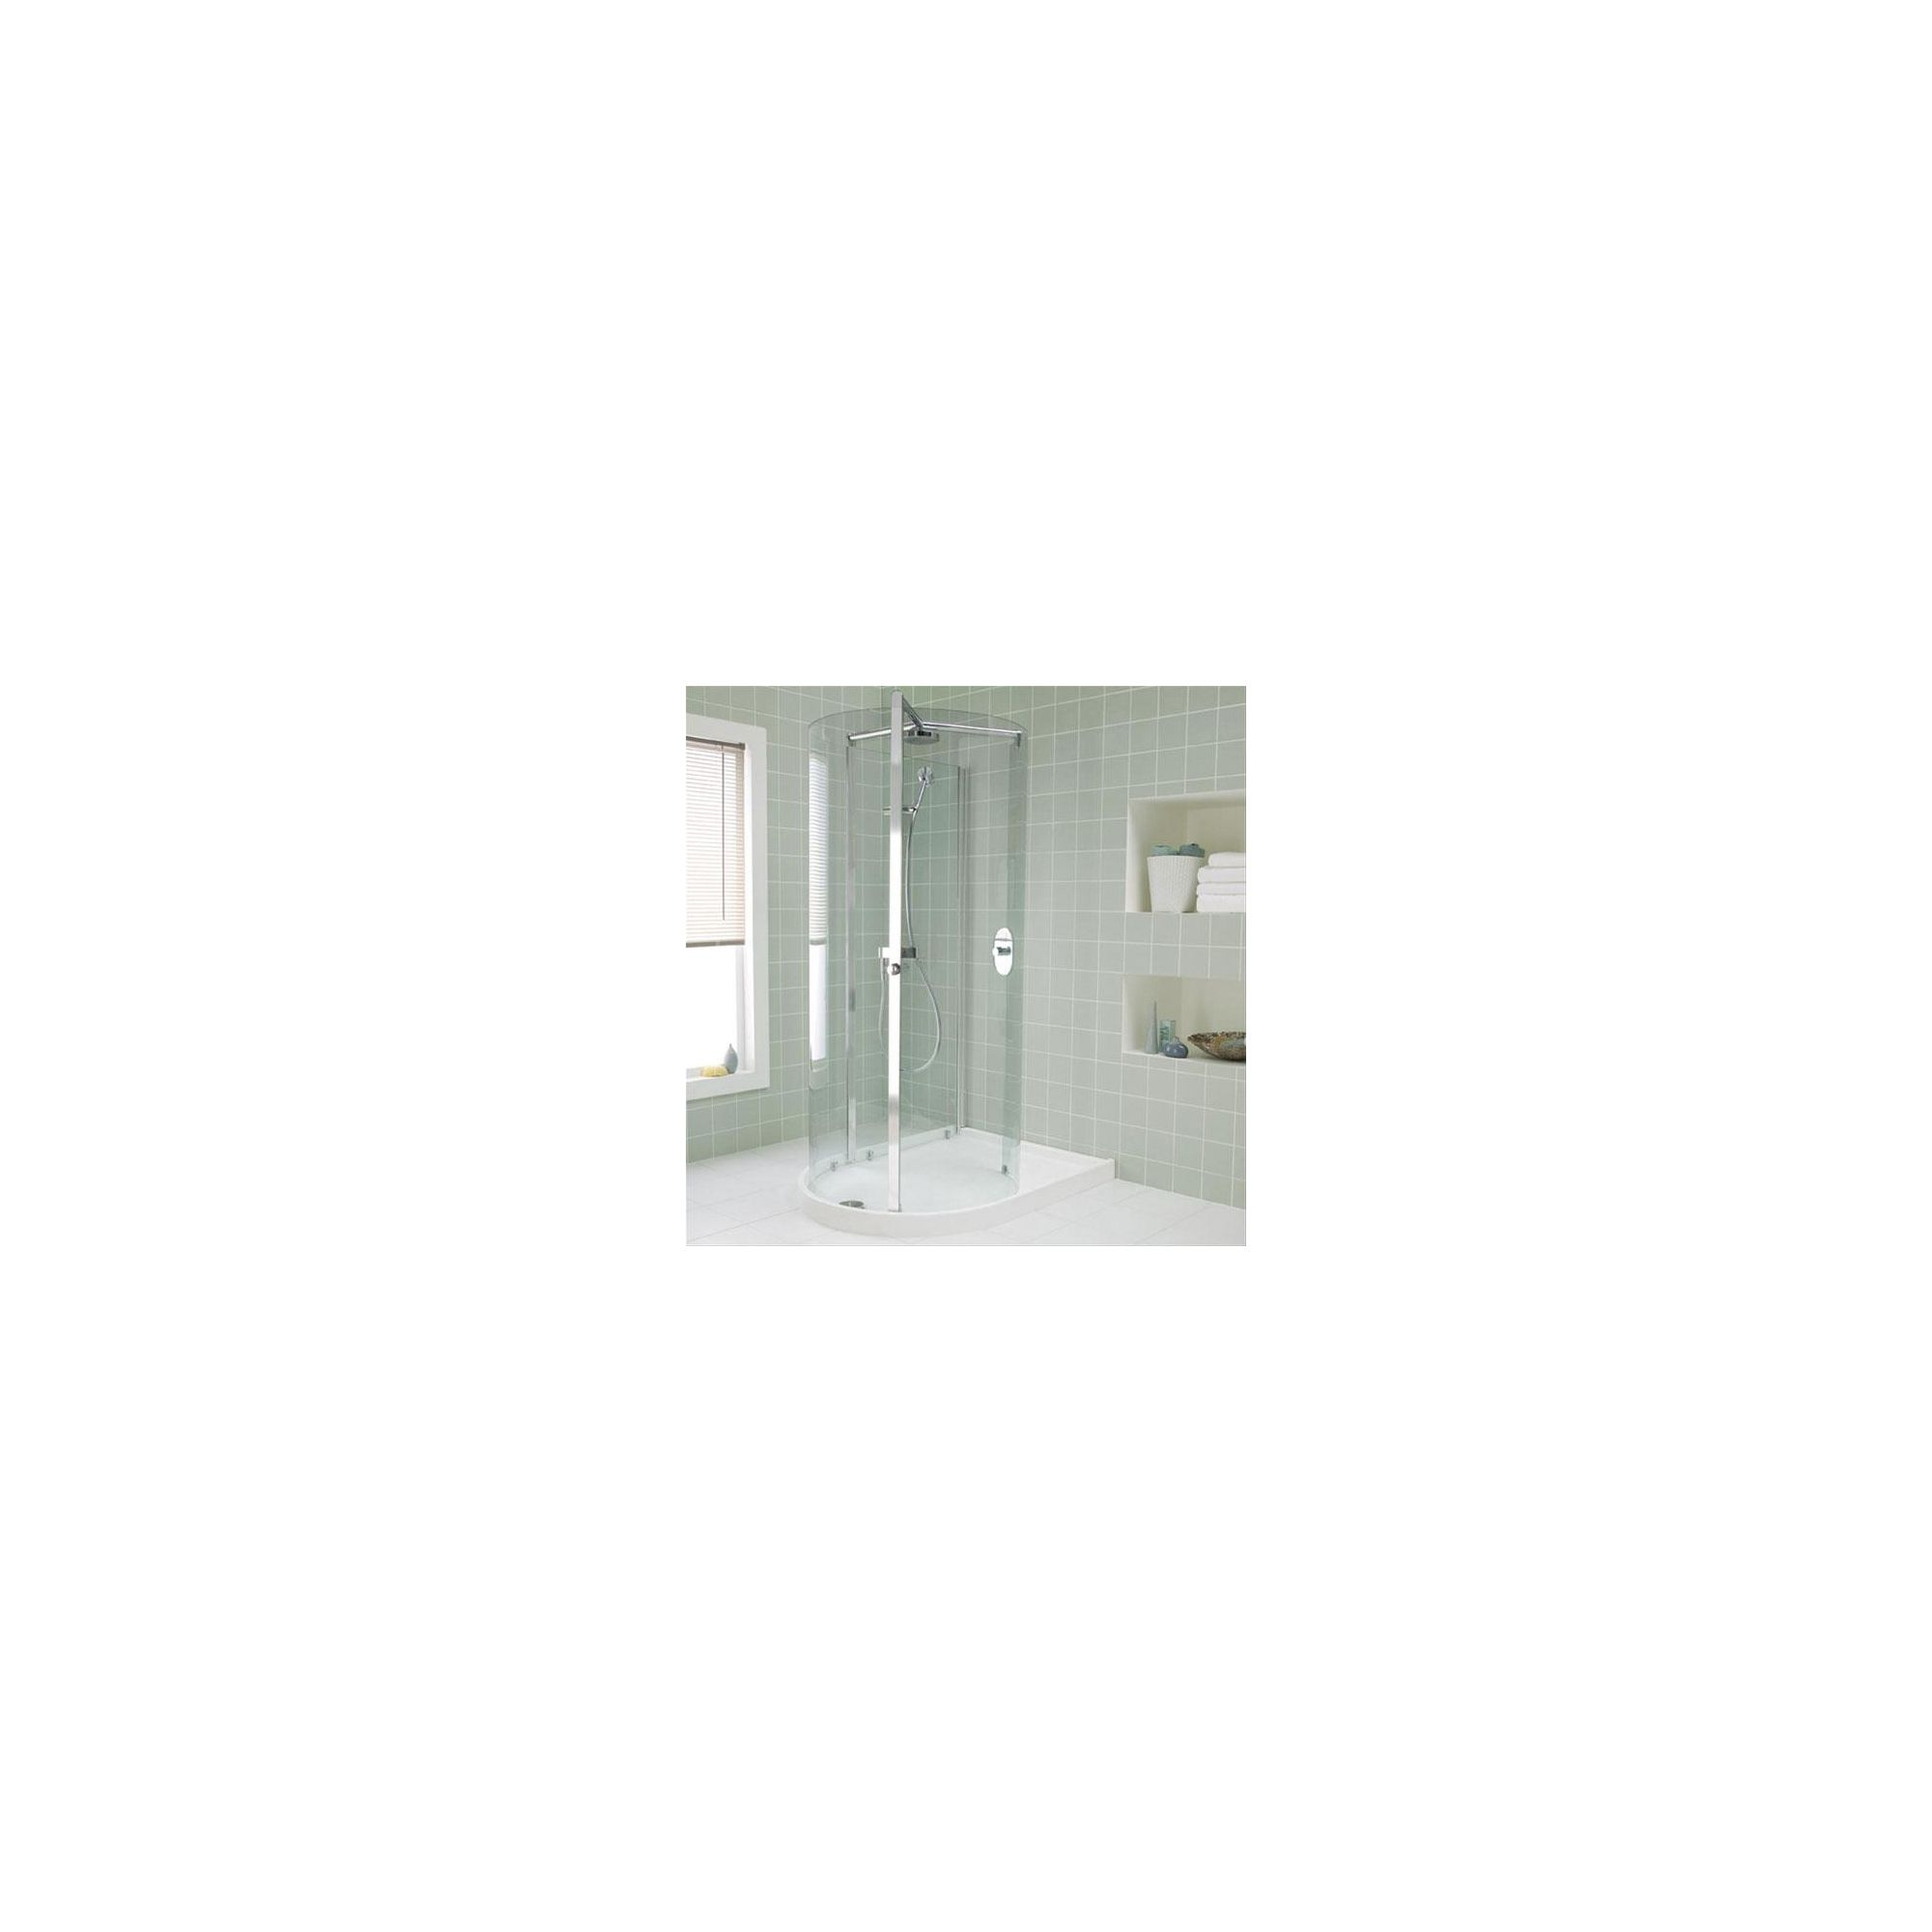 Ideal Standard Serenis Corner 360 Degree Shower Enclosure, including Fittings, 1700mm x 1100mm, Low Profile Tray, Left Handed at Tesco Direct